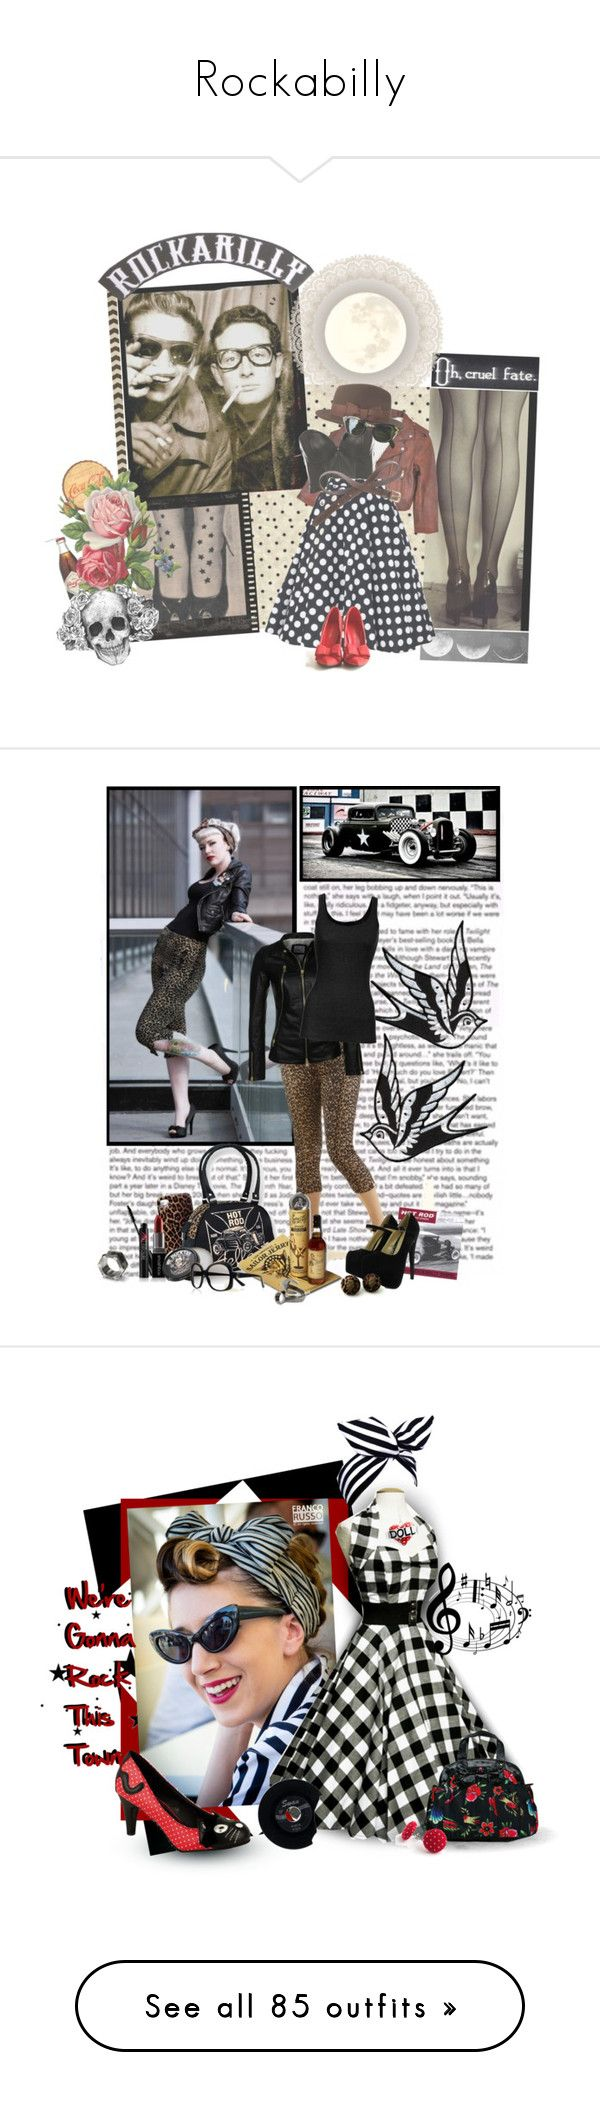 """""""Rockabilly"""" by rorie-burke ❤ liked on Polyvore featuring BOBBY, Zephyr, Maurie & Eve, SOLD Design Lab, Mantaray, Steven Alan, vintage inspired, 1950's inspired, rockabilly inspired and Lucky Brand"""